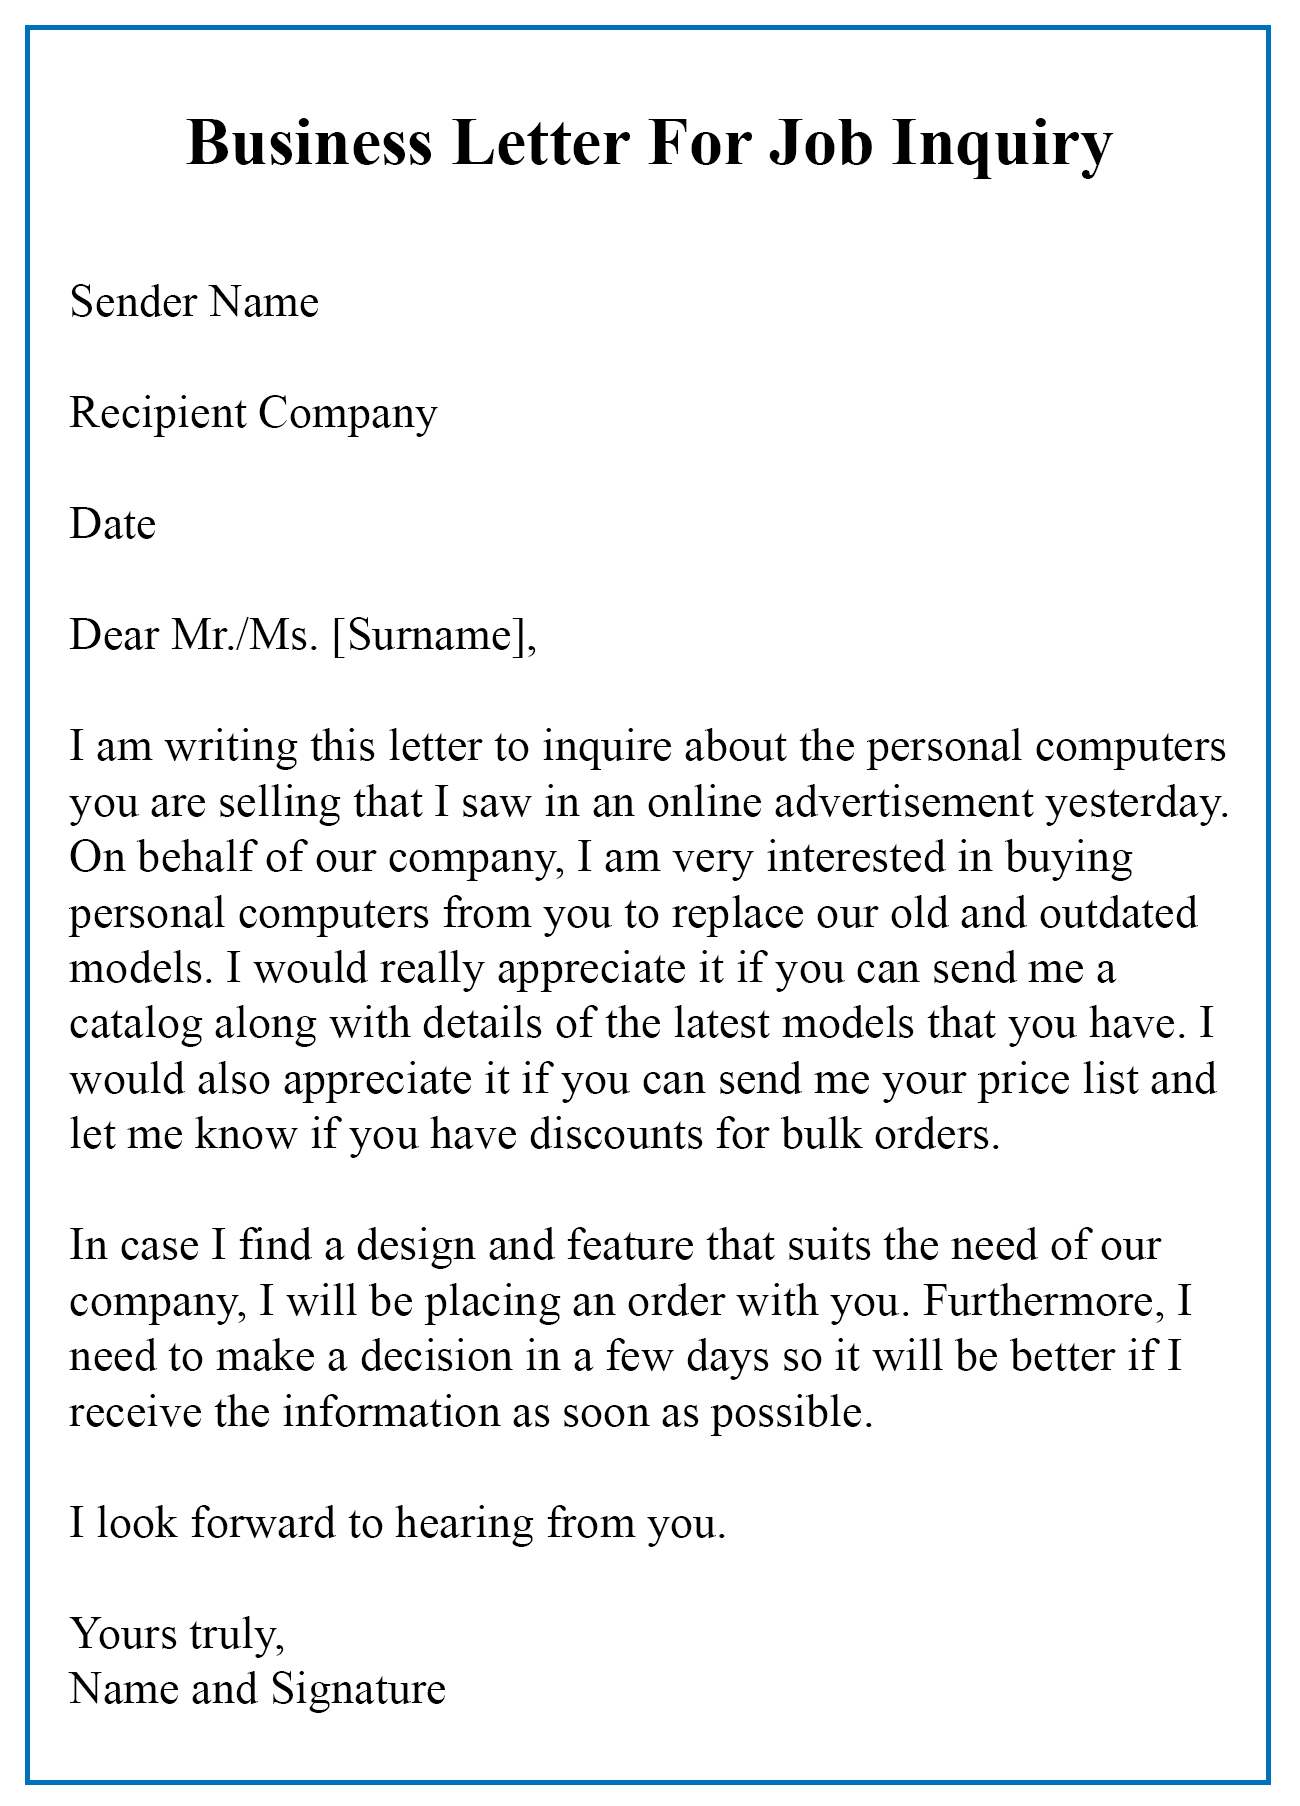 Business Letter For Inquiry Sample